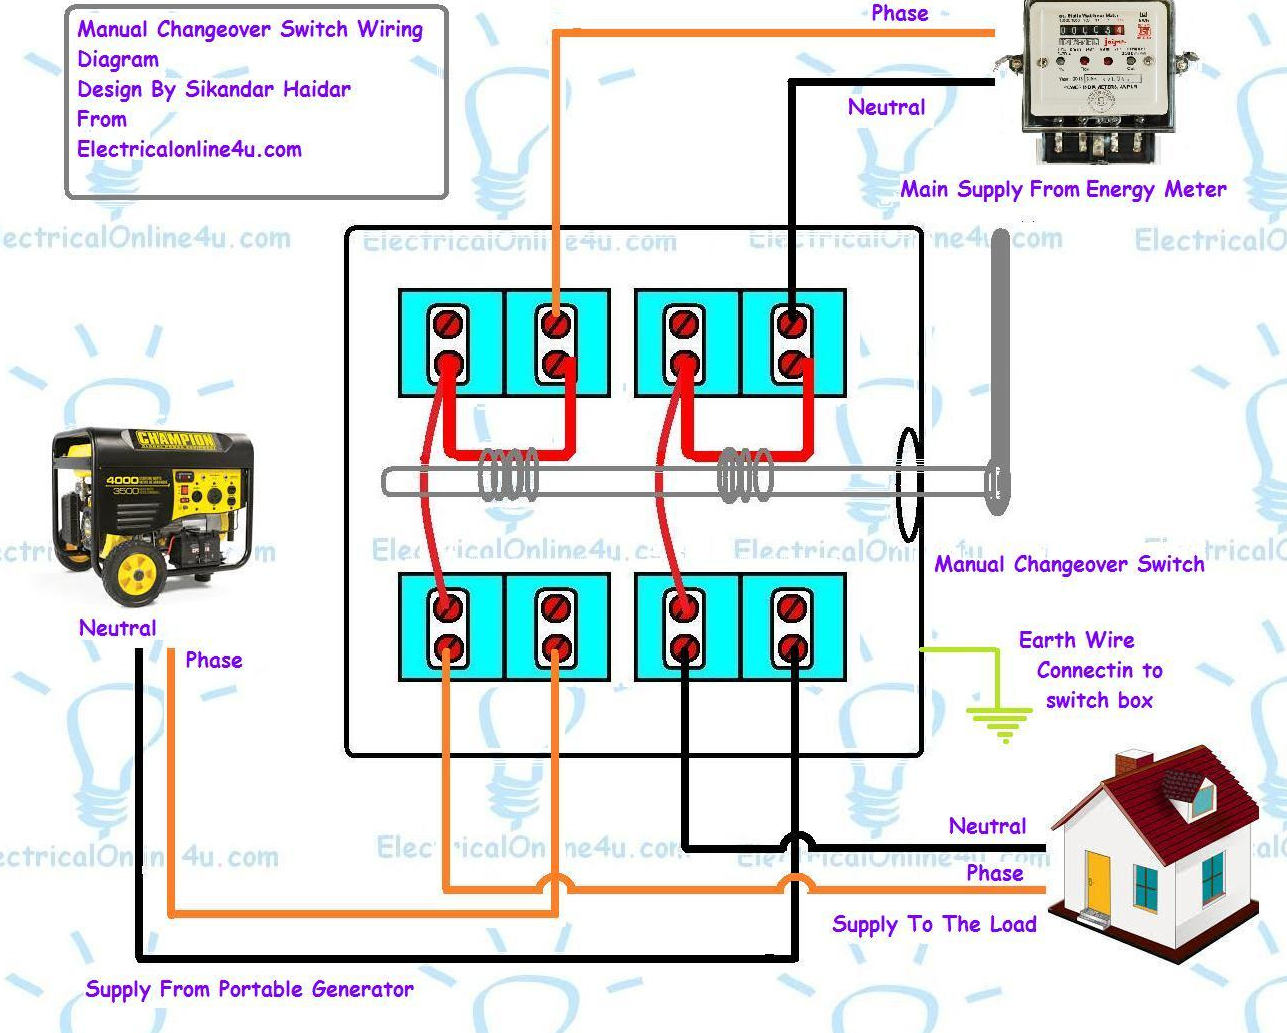 Manual changeover switch wiring diagram for portable ... on